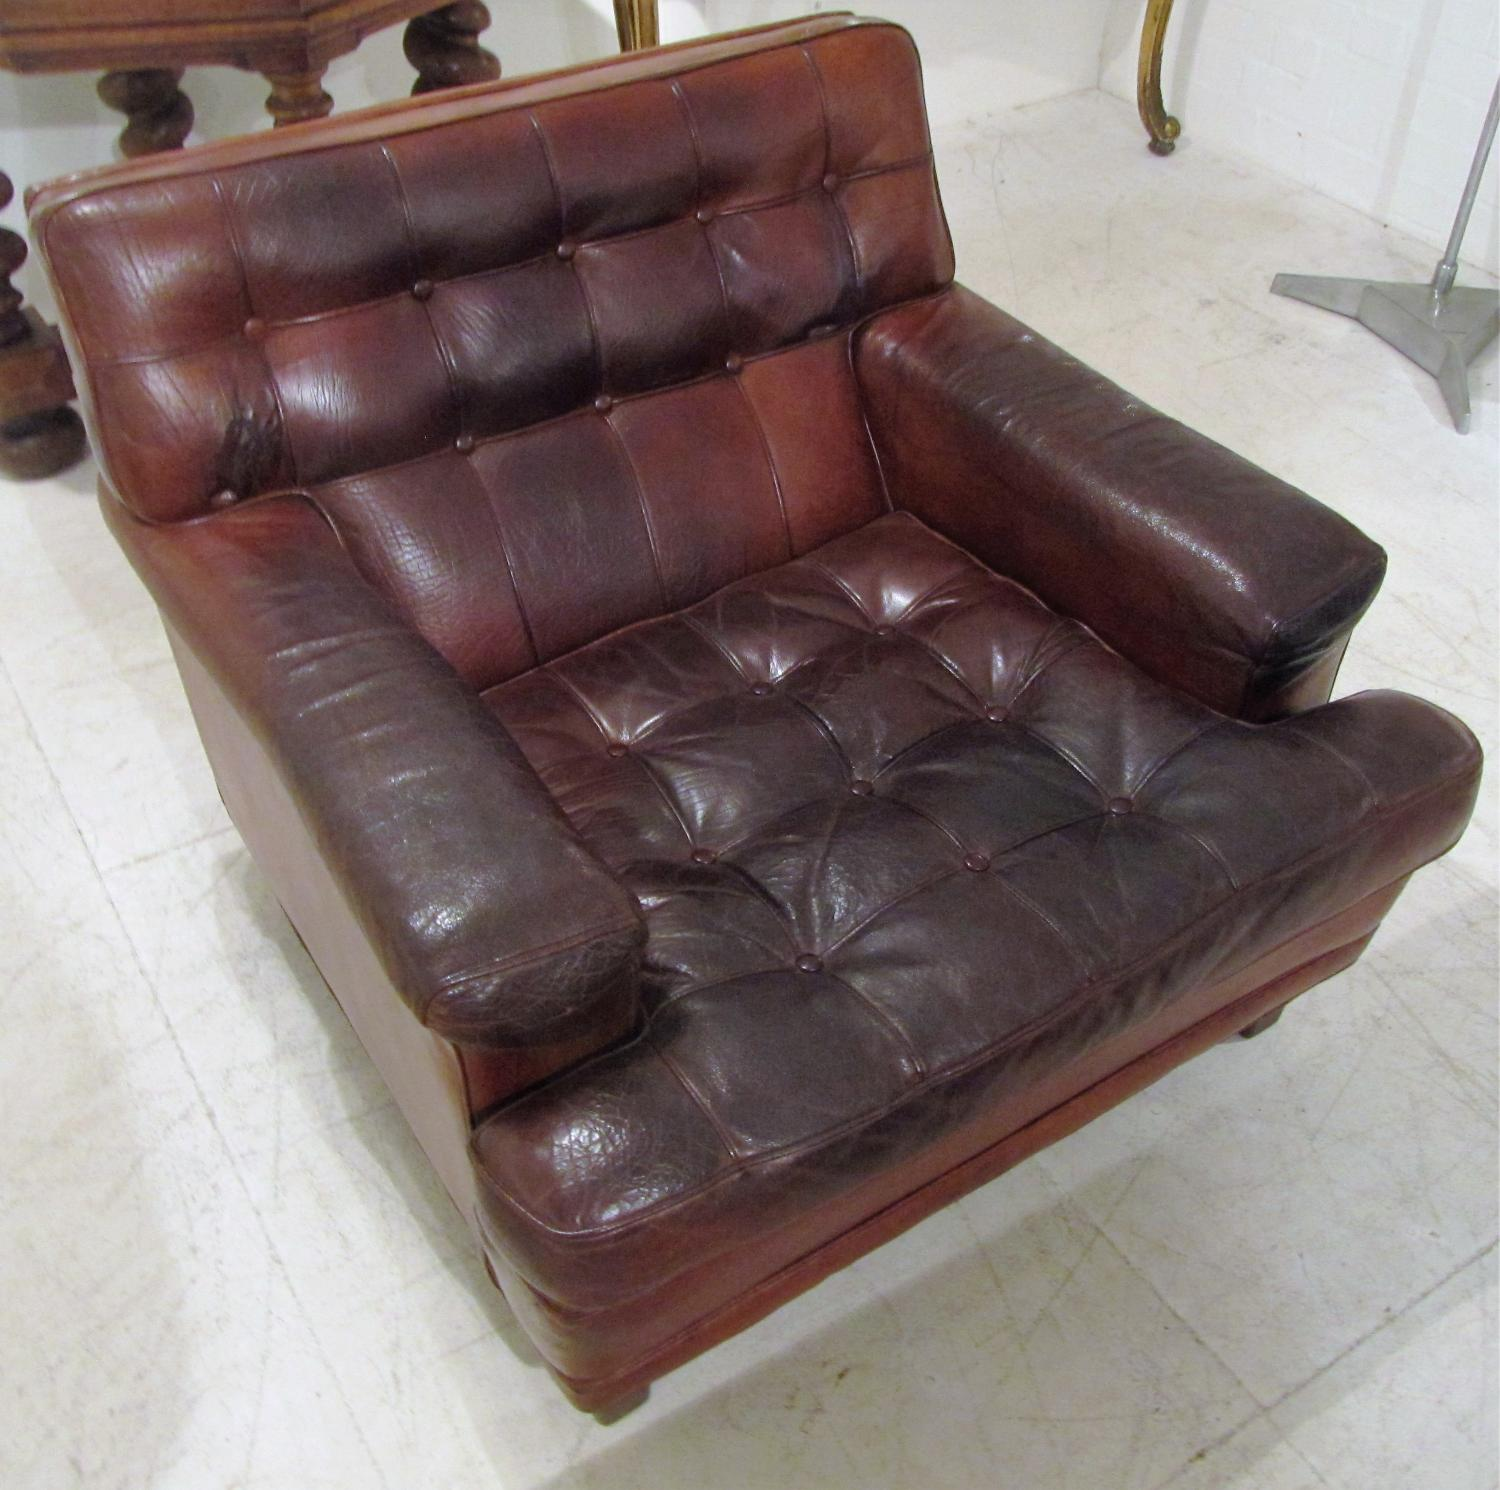 A single leather armchair